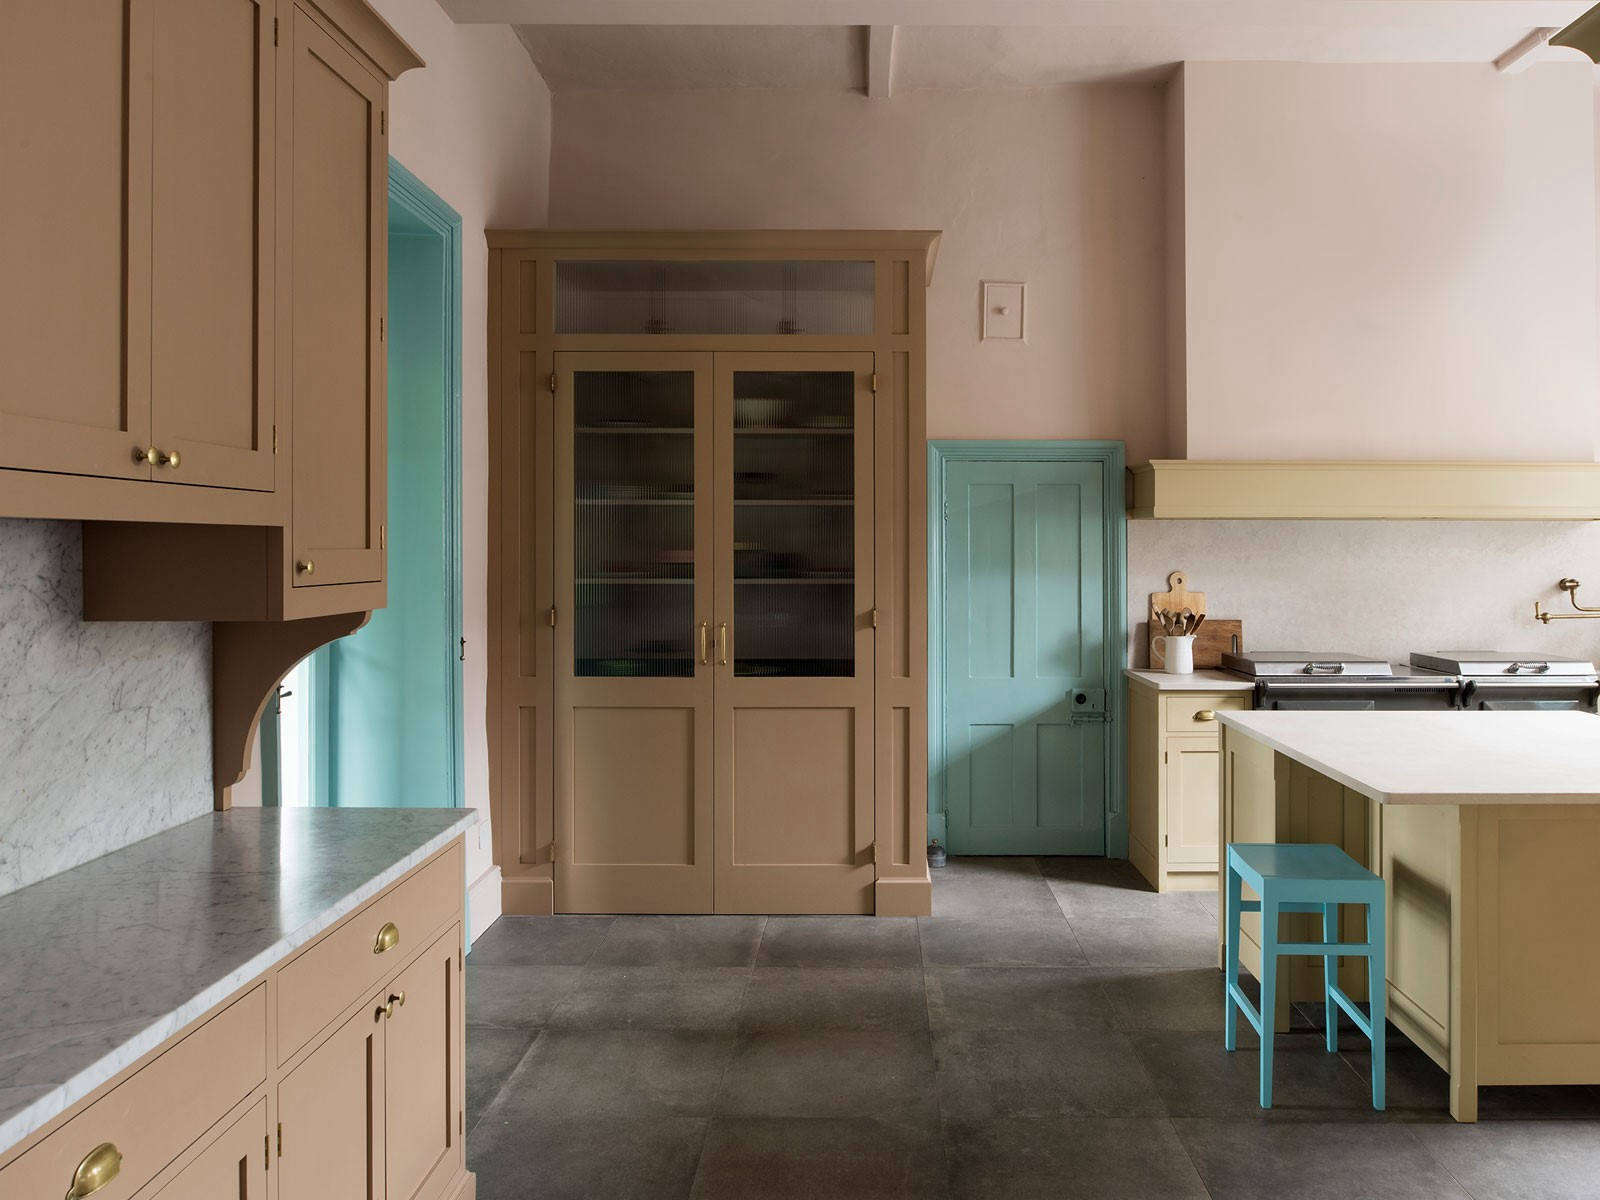 The kitchen includes a large larder and sideboard painted in drab brown. Photography byLeigh Simpson, courtesy of Inglis Hall from Kitchen of the Week: An Unexpected Palette in a Custom Kitchen Designed by Inglis Hall.